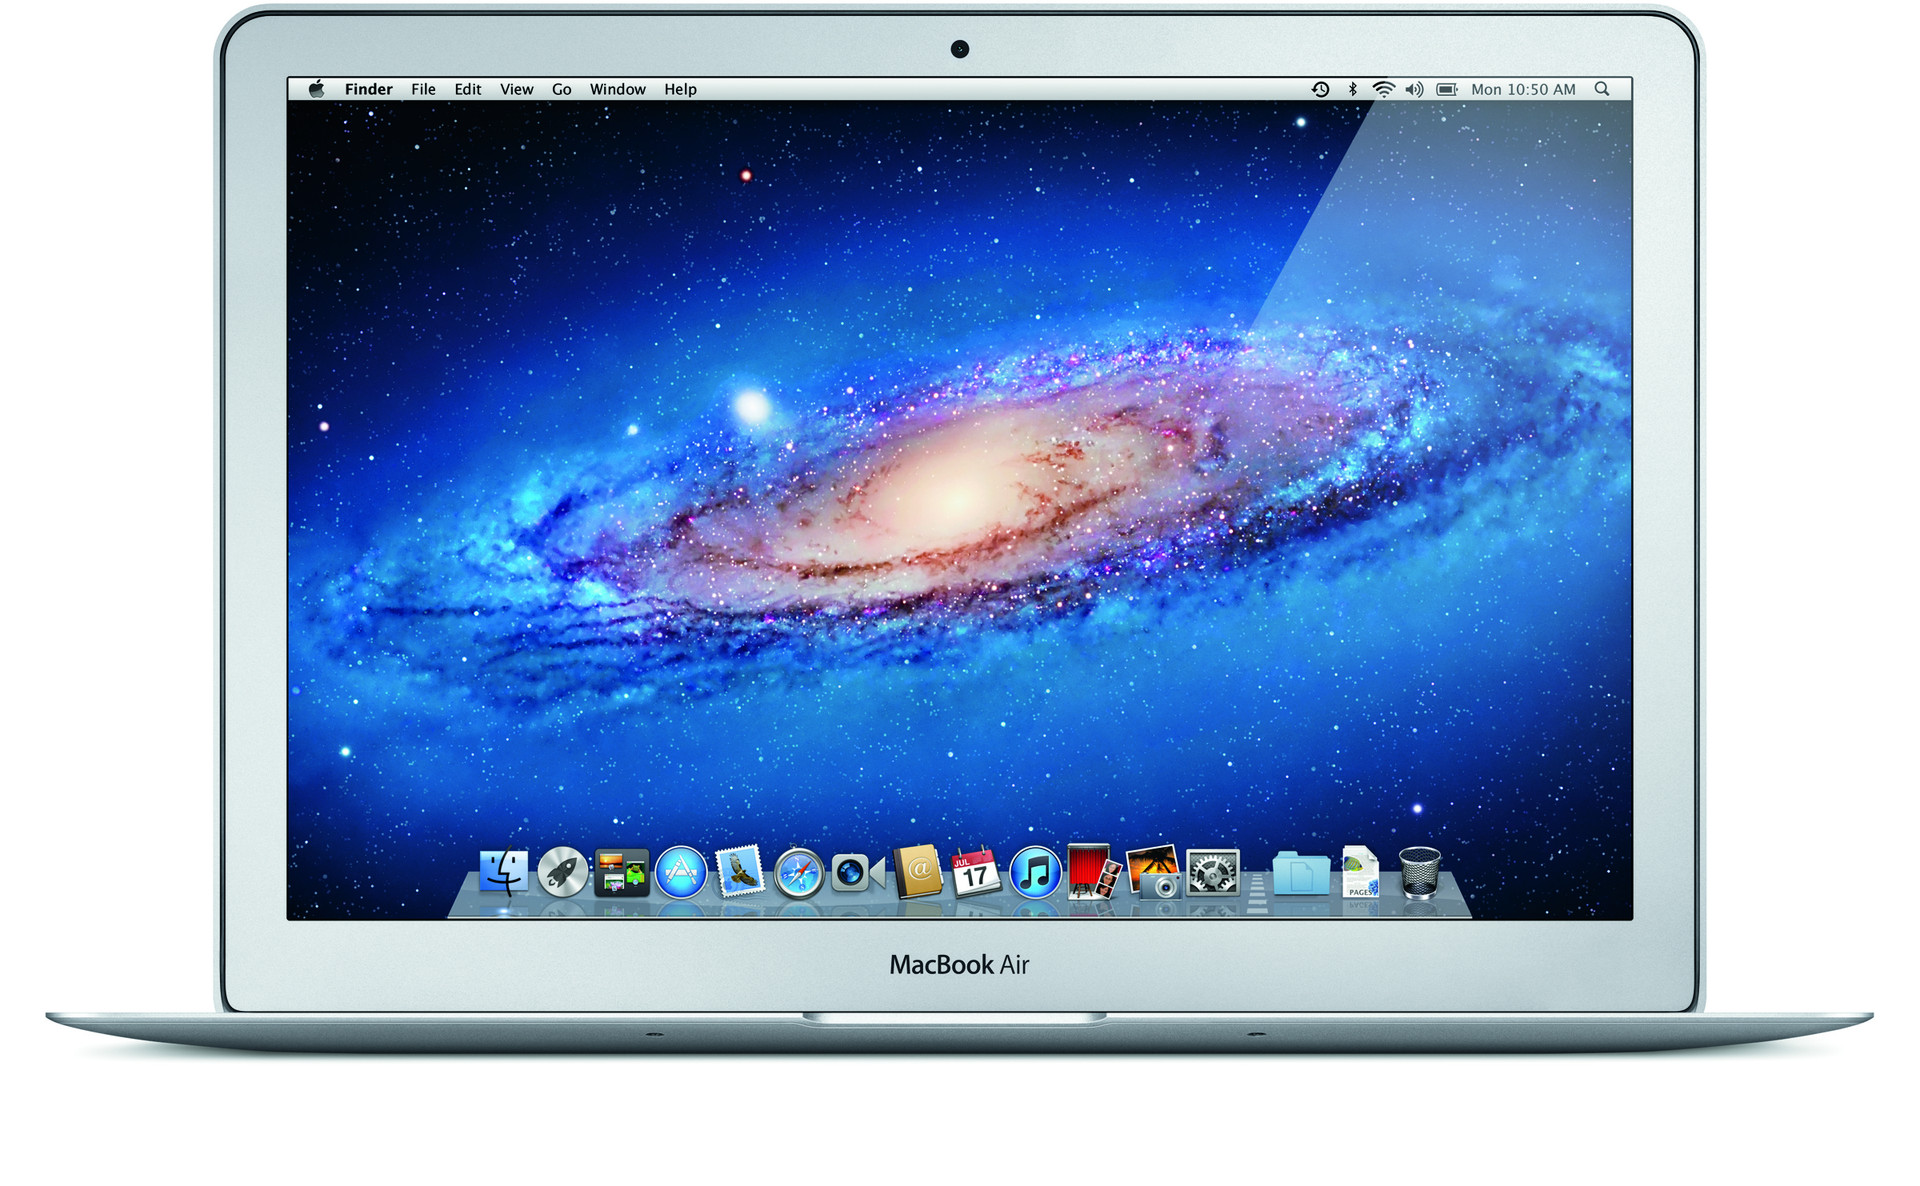 review apple macbook air 13 mid 2012 subnotebook reviews. Black Bedroom Furniture Sets. Home Design Ideas